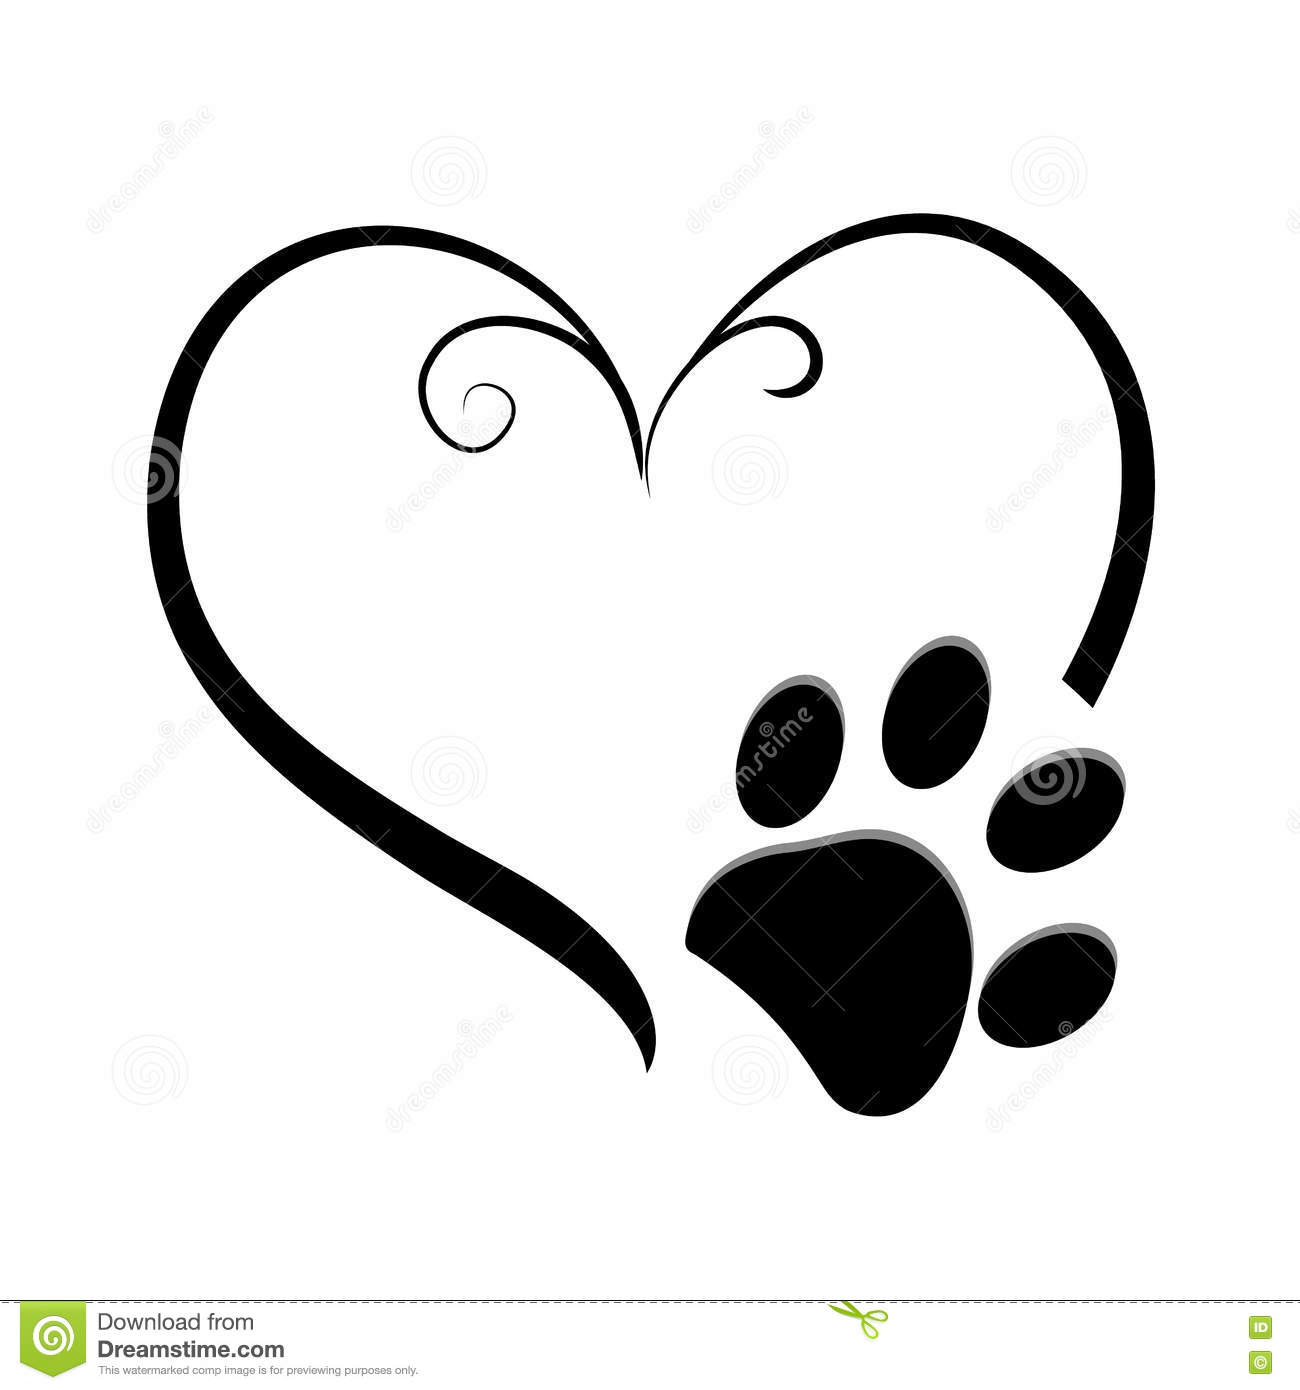 Dog paw symbol images symbol and sign ideas heart and dog paw prints symbol tattoo stock vector illustration heart and dog paw prints symbol biocorpaavc